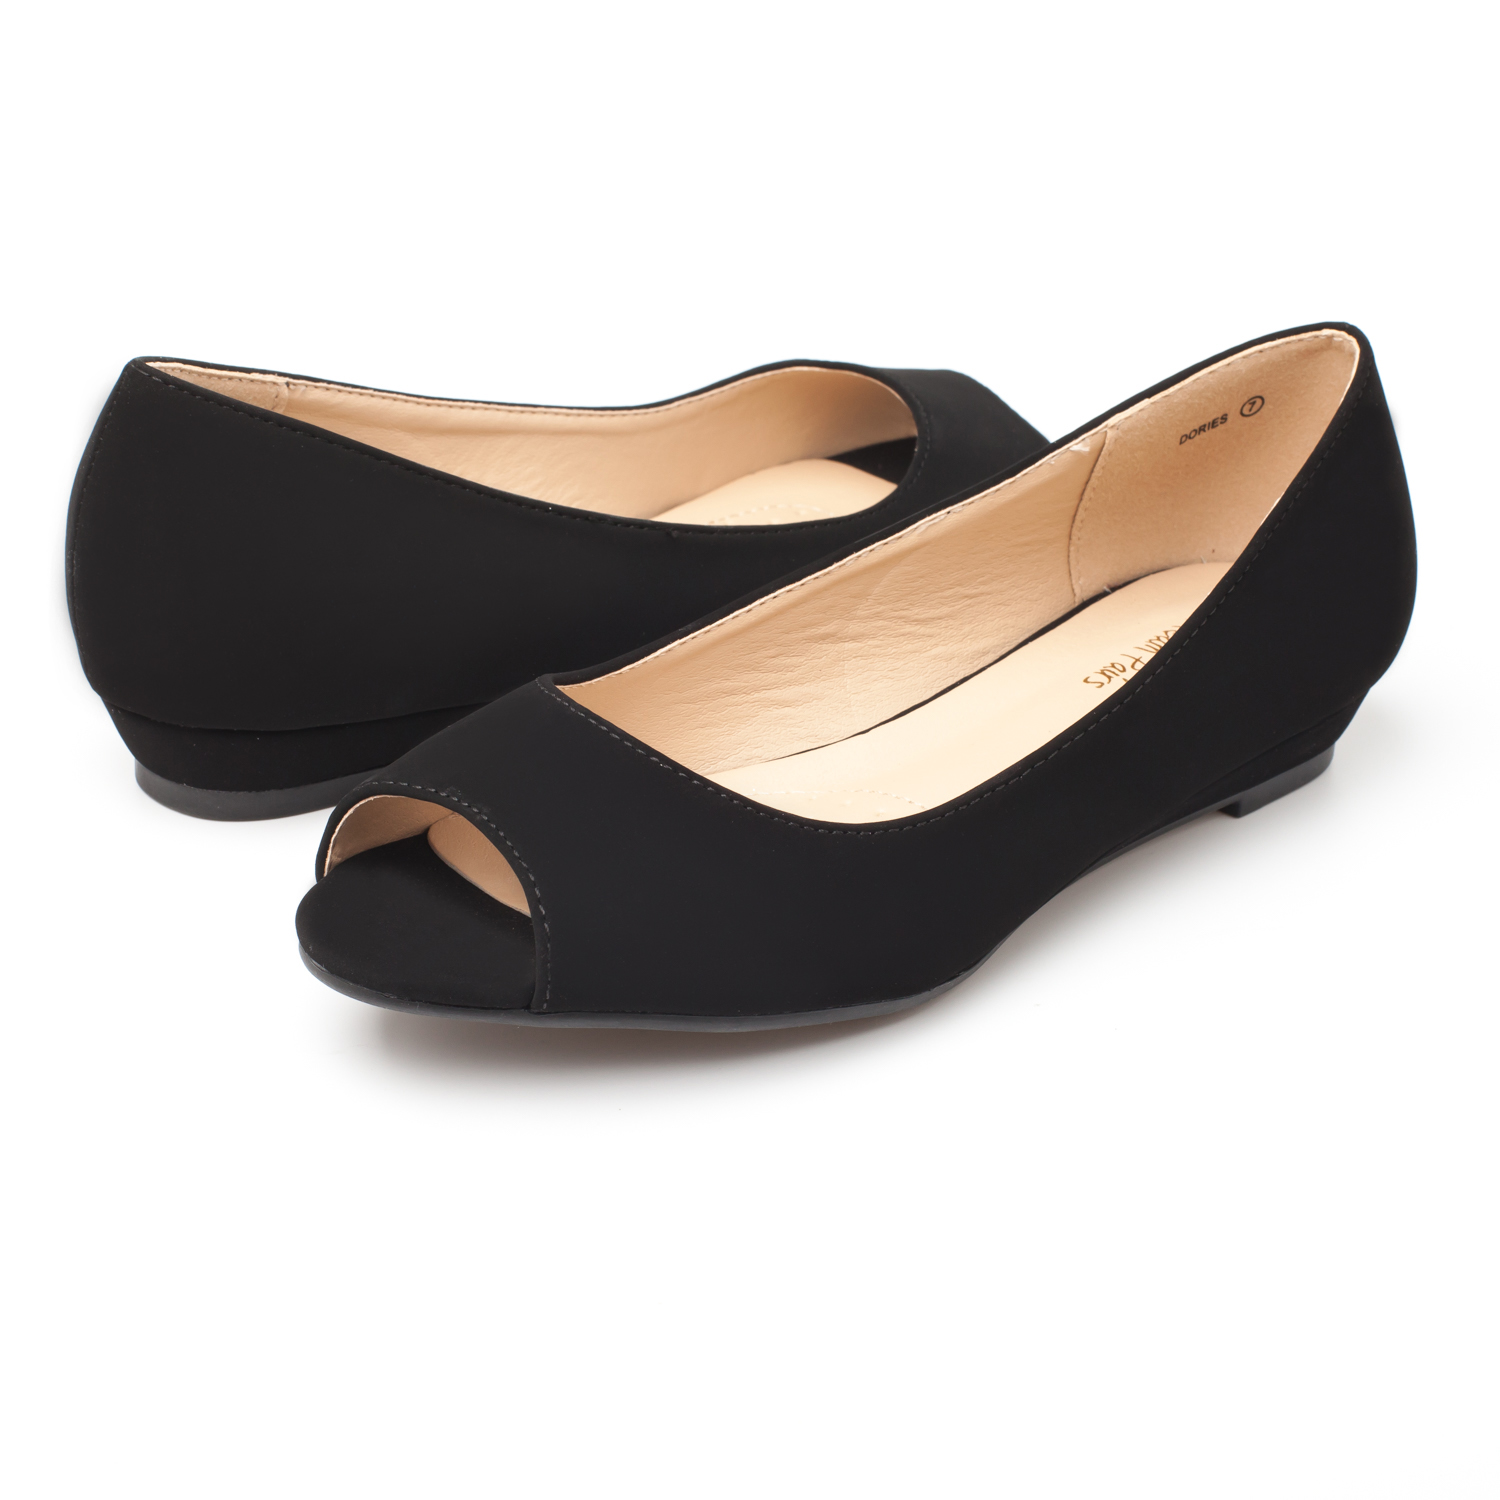 DREAM-PAIRS-Womens-Ballet-Flats-Low-Heel-Open-Toe-Slip-On-Dress-Flat-Shoes thumbnail 51